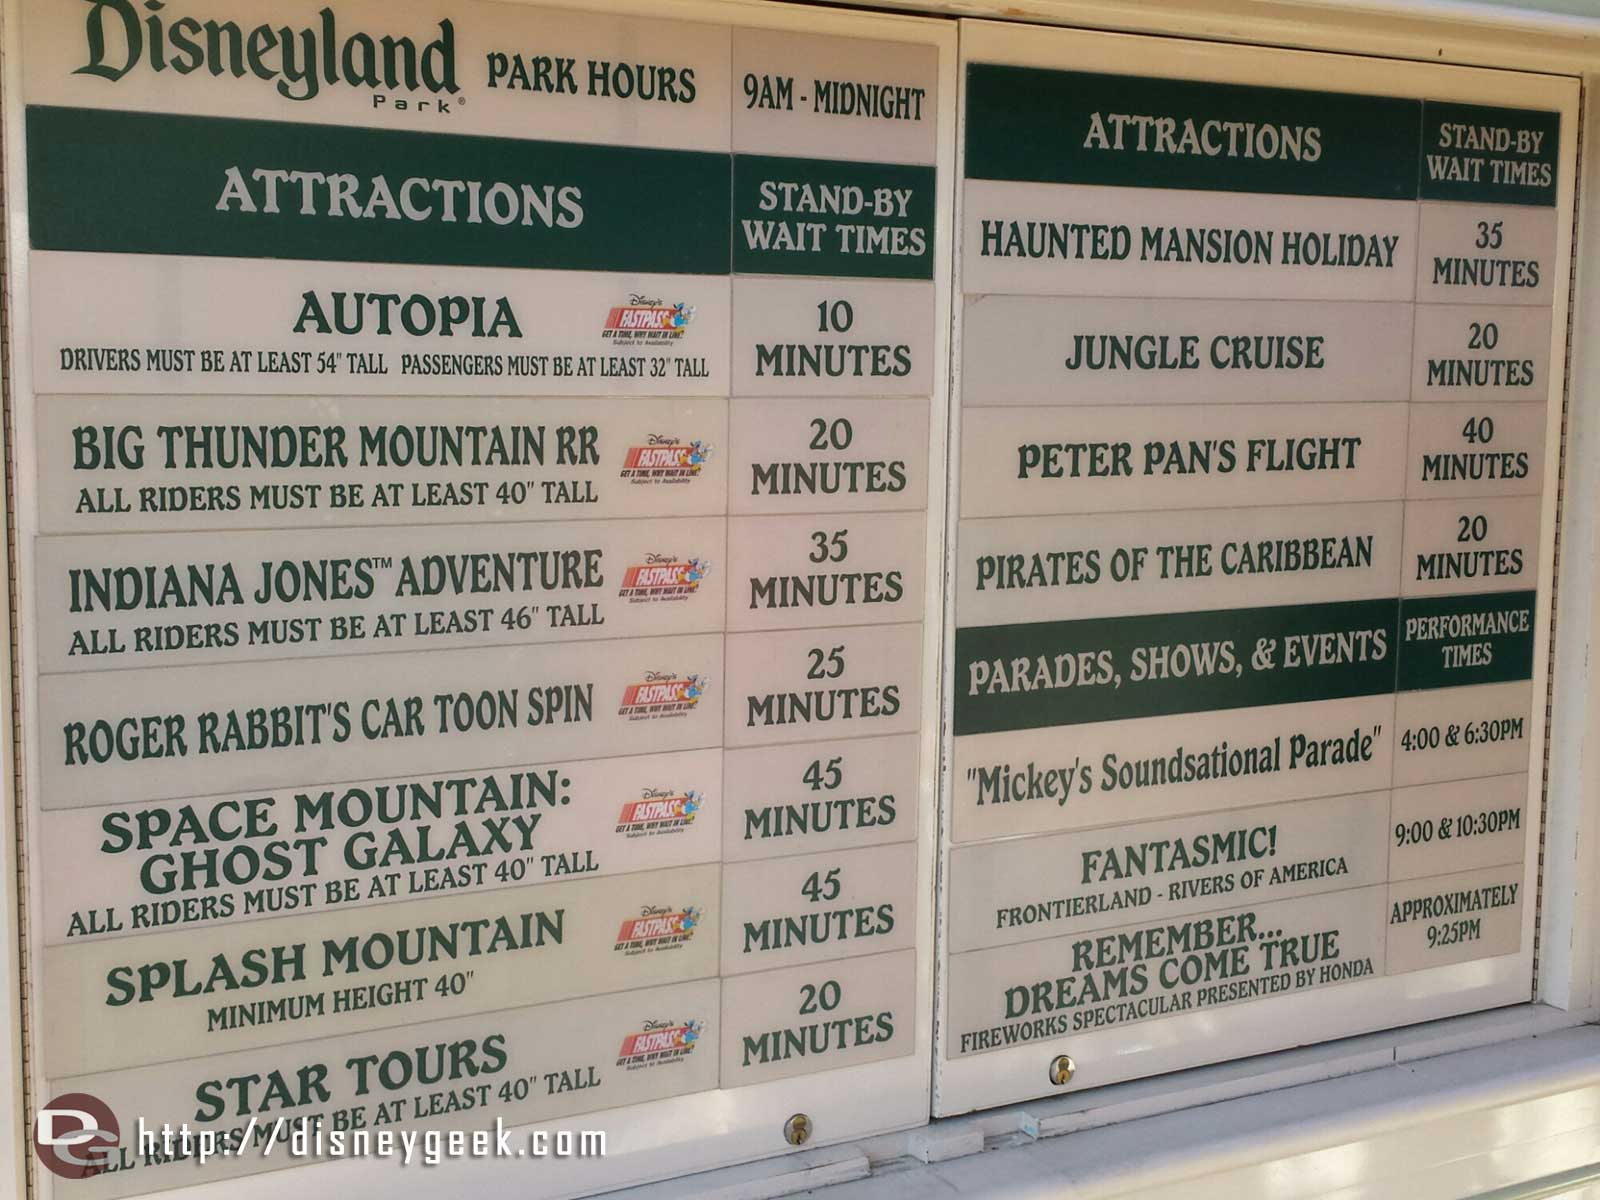 #Disneyland waits as of 4:43pm